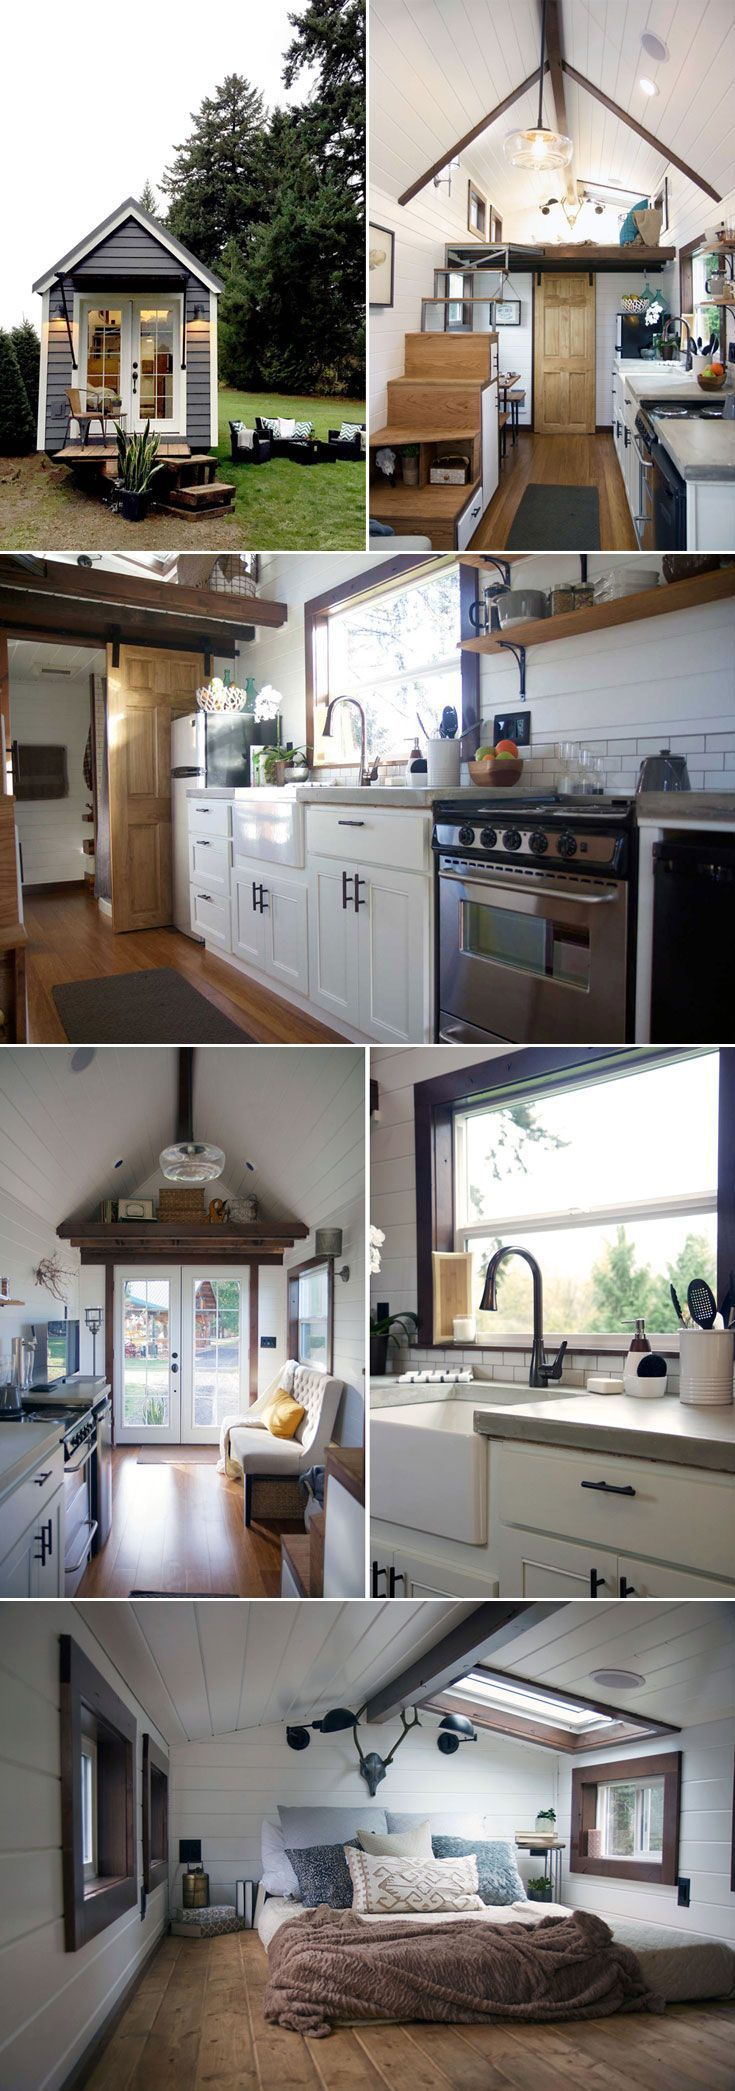 """A luxurious 24' tiny house created by Portland-based Tiny Heirloom, the team from HGTV's Tiny Luxury.  The kitchen features a large farm sink, concrete countertops, an apartment size refrigerator, and a 24"""" four-burner electric range."""